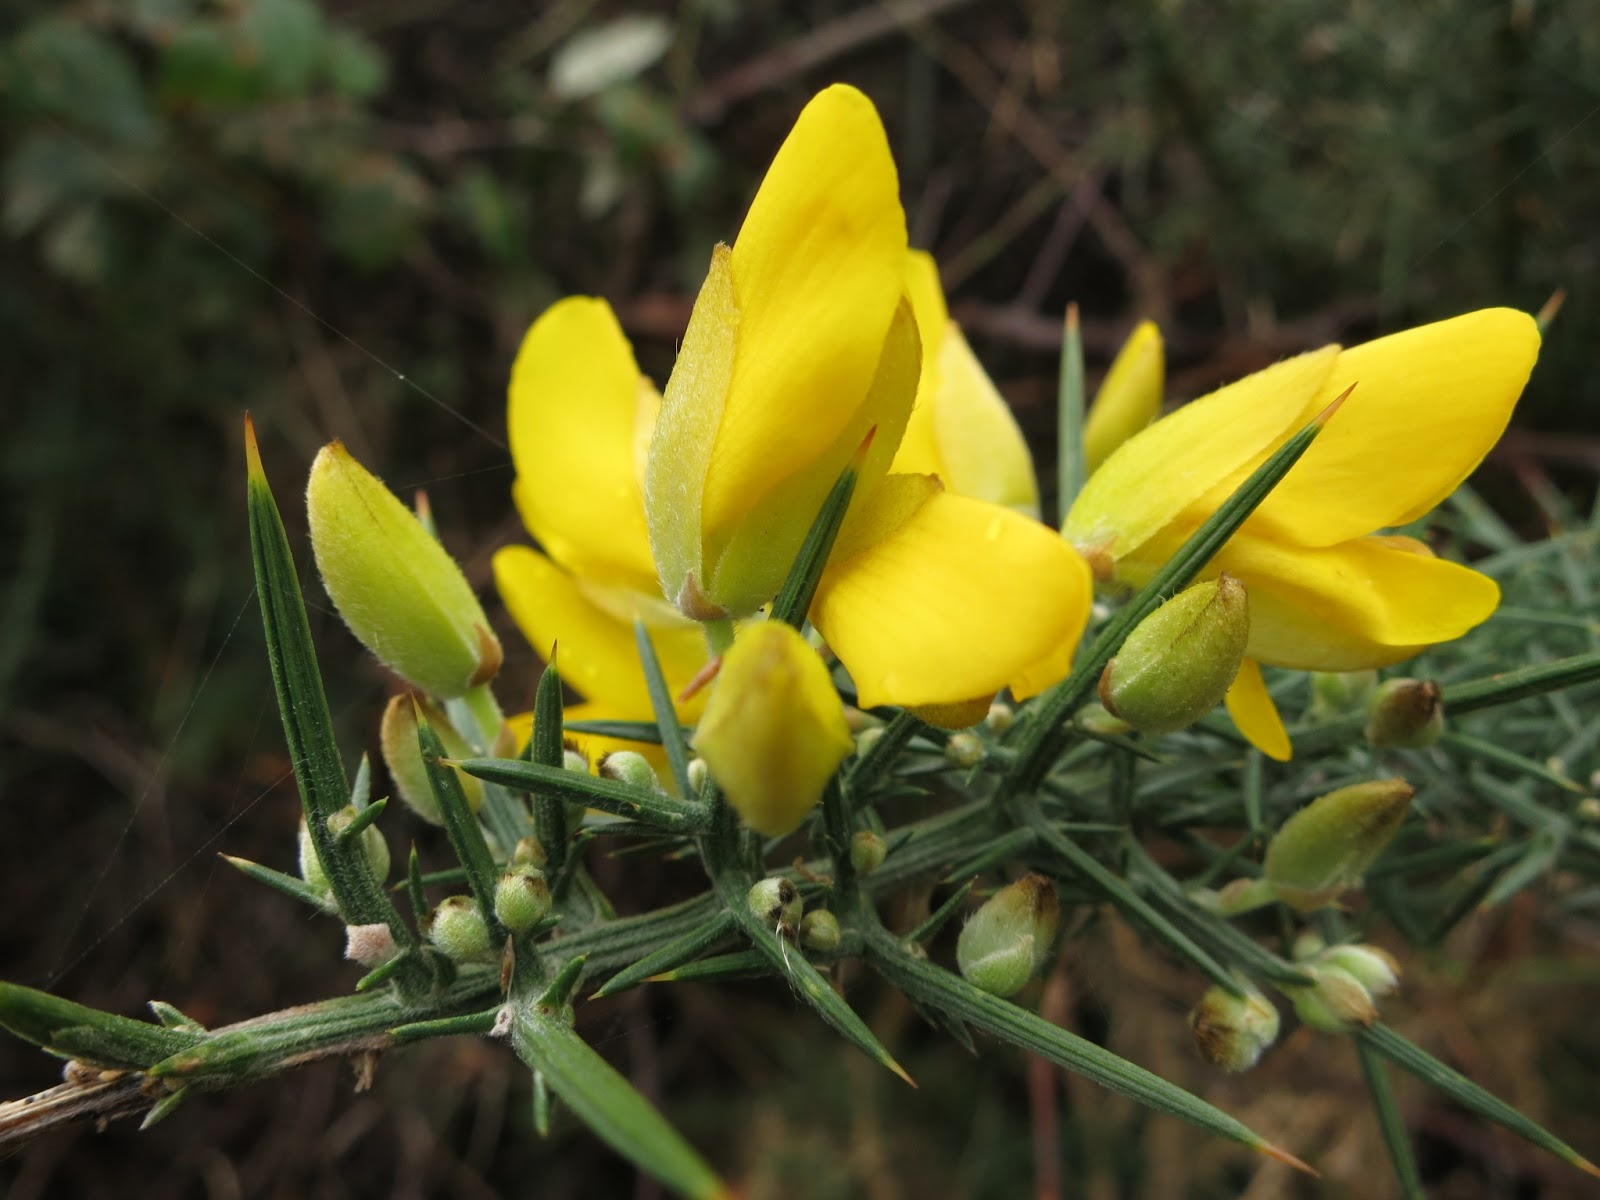 Gorse flower - close up showing prickles and buds.